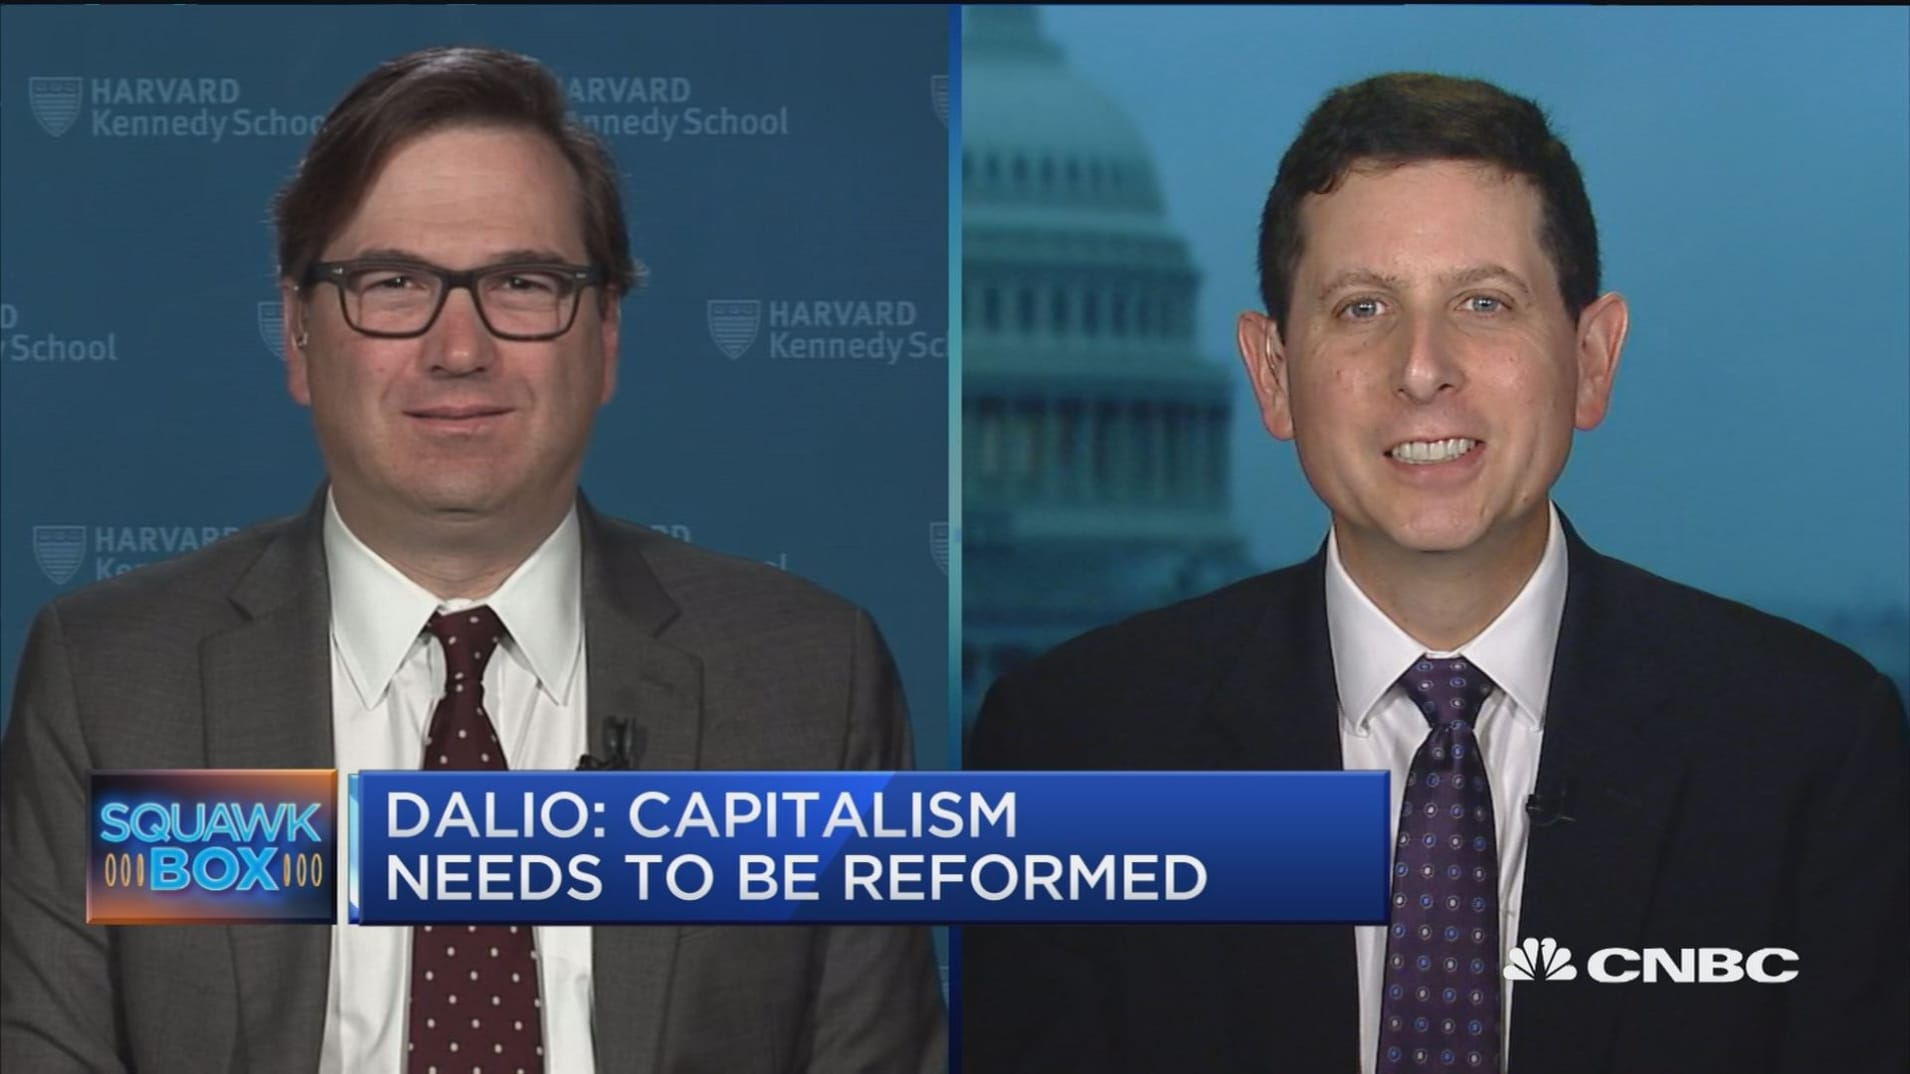 Two economists weigh in on Ray Dalio's comments about reforming capitalism